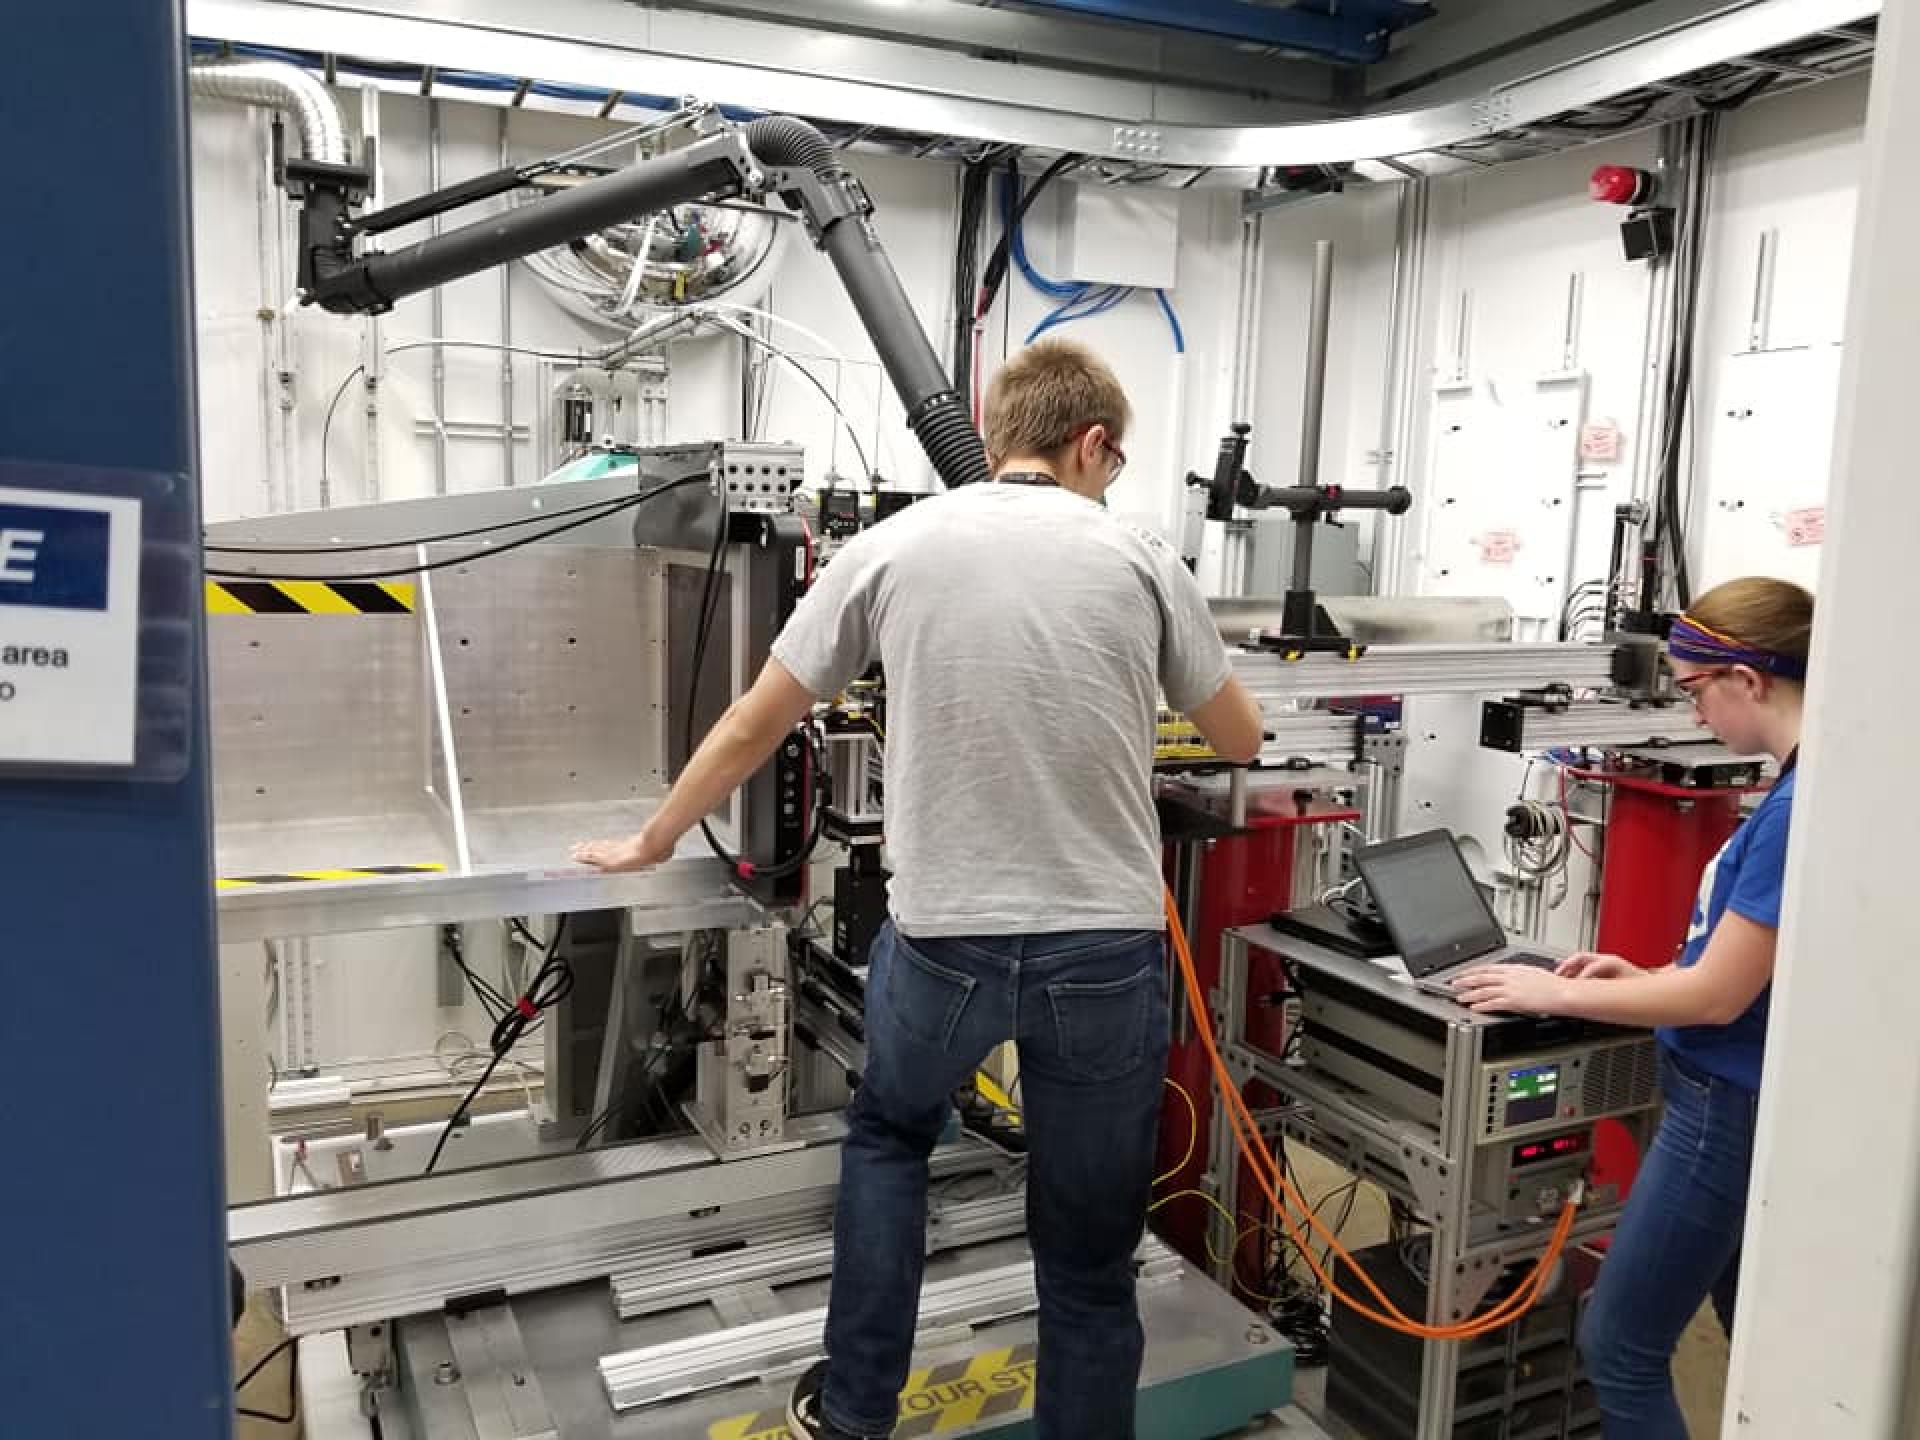 Samuel Lee and Morgan Fellows replace ionic liquid samples on the X-ray instrument.